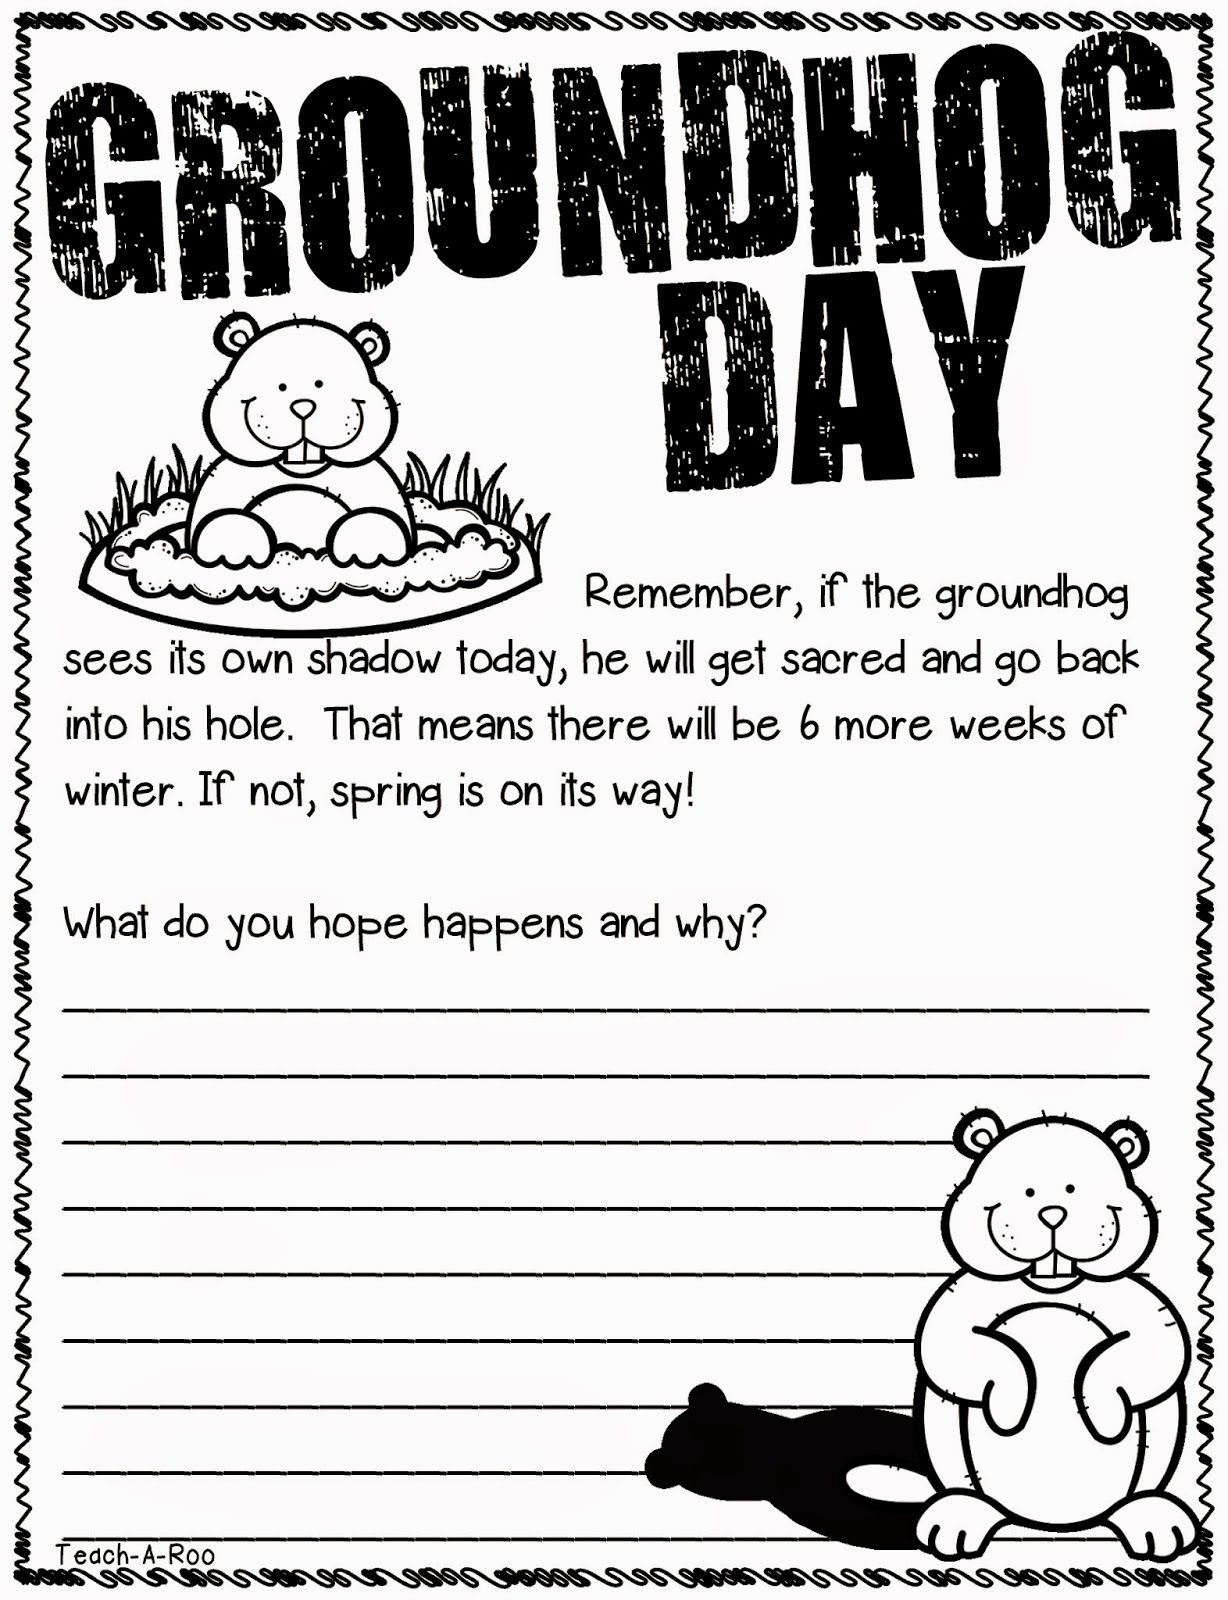 hight resolution of Teach-A-Roo: Groundhogs Make Me Giggle!   Groundhog day